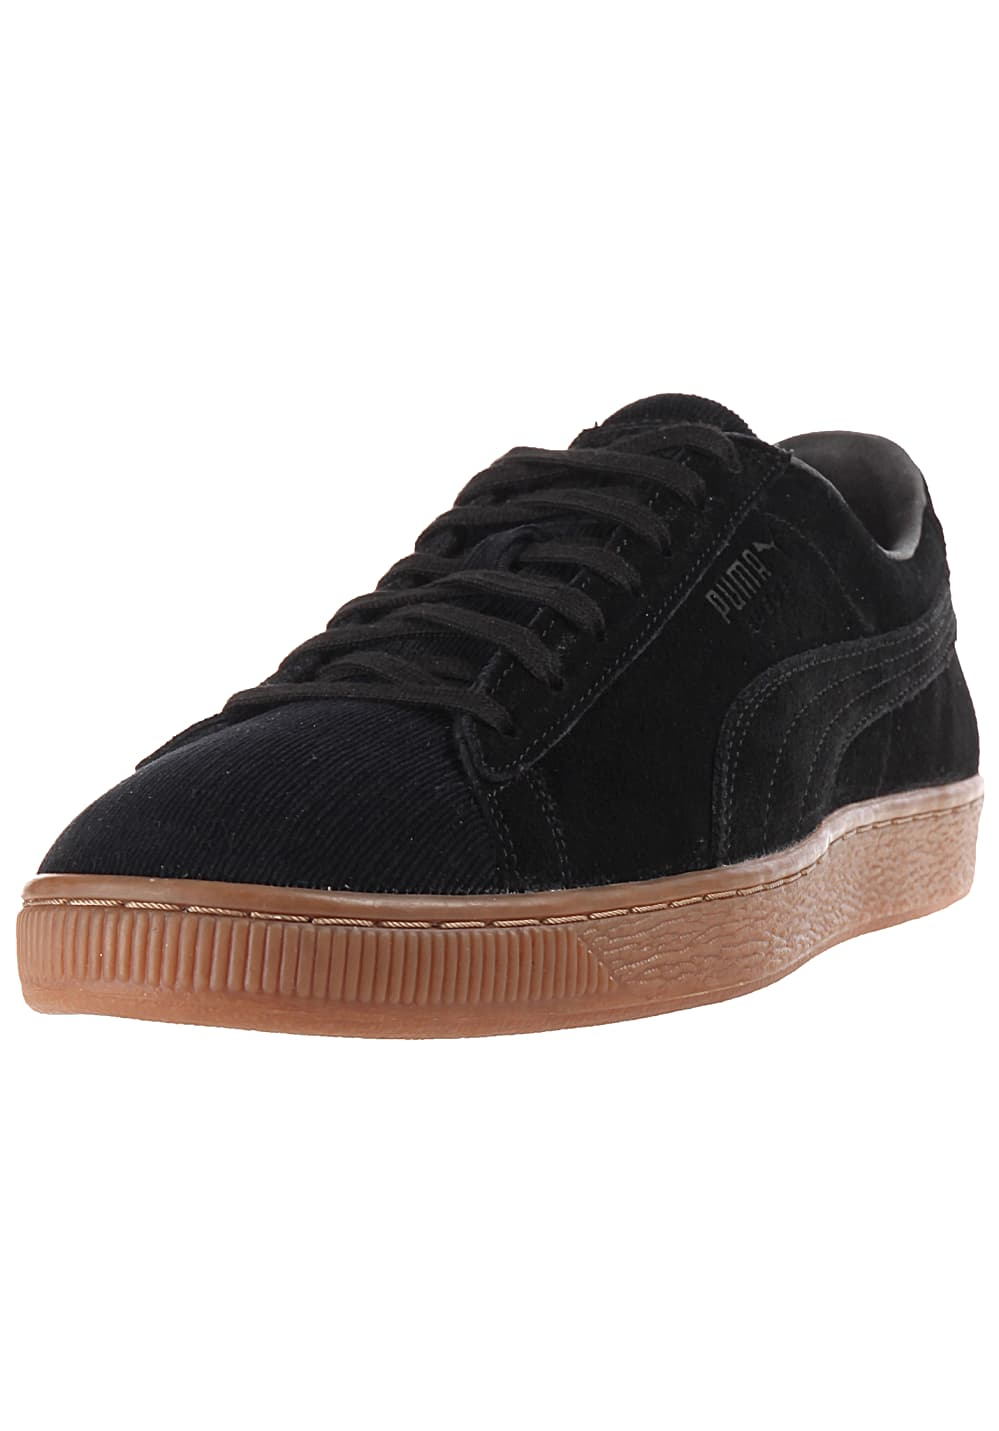 Puma Suede Classic Pincord - Sneakers - Black - Planet Sports 06f5f6803